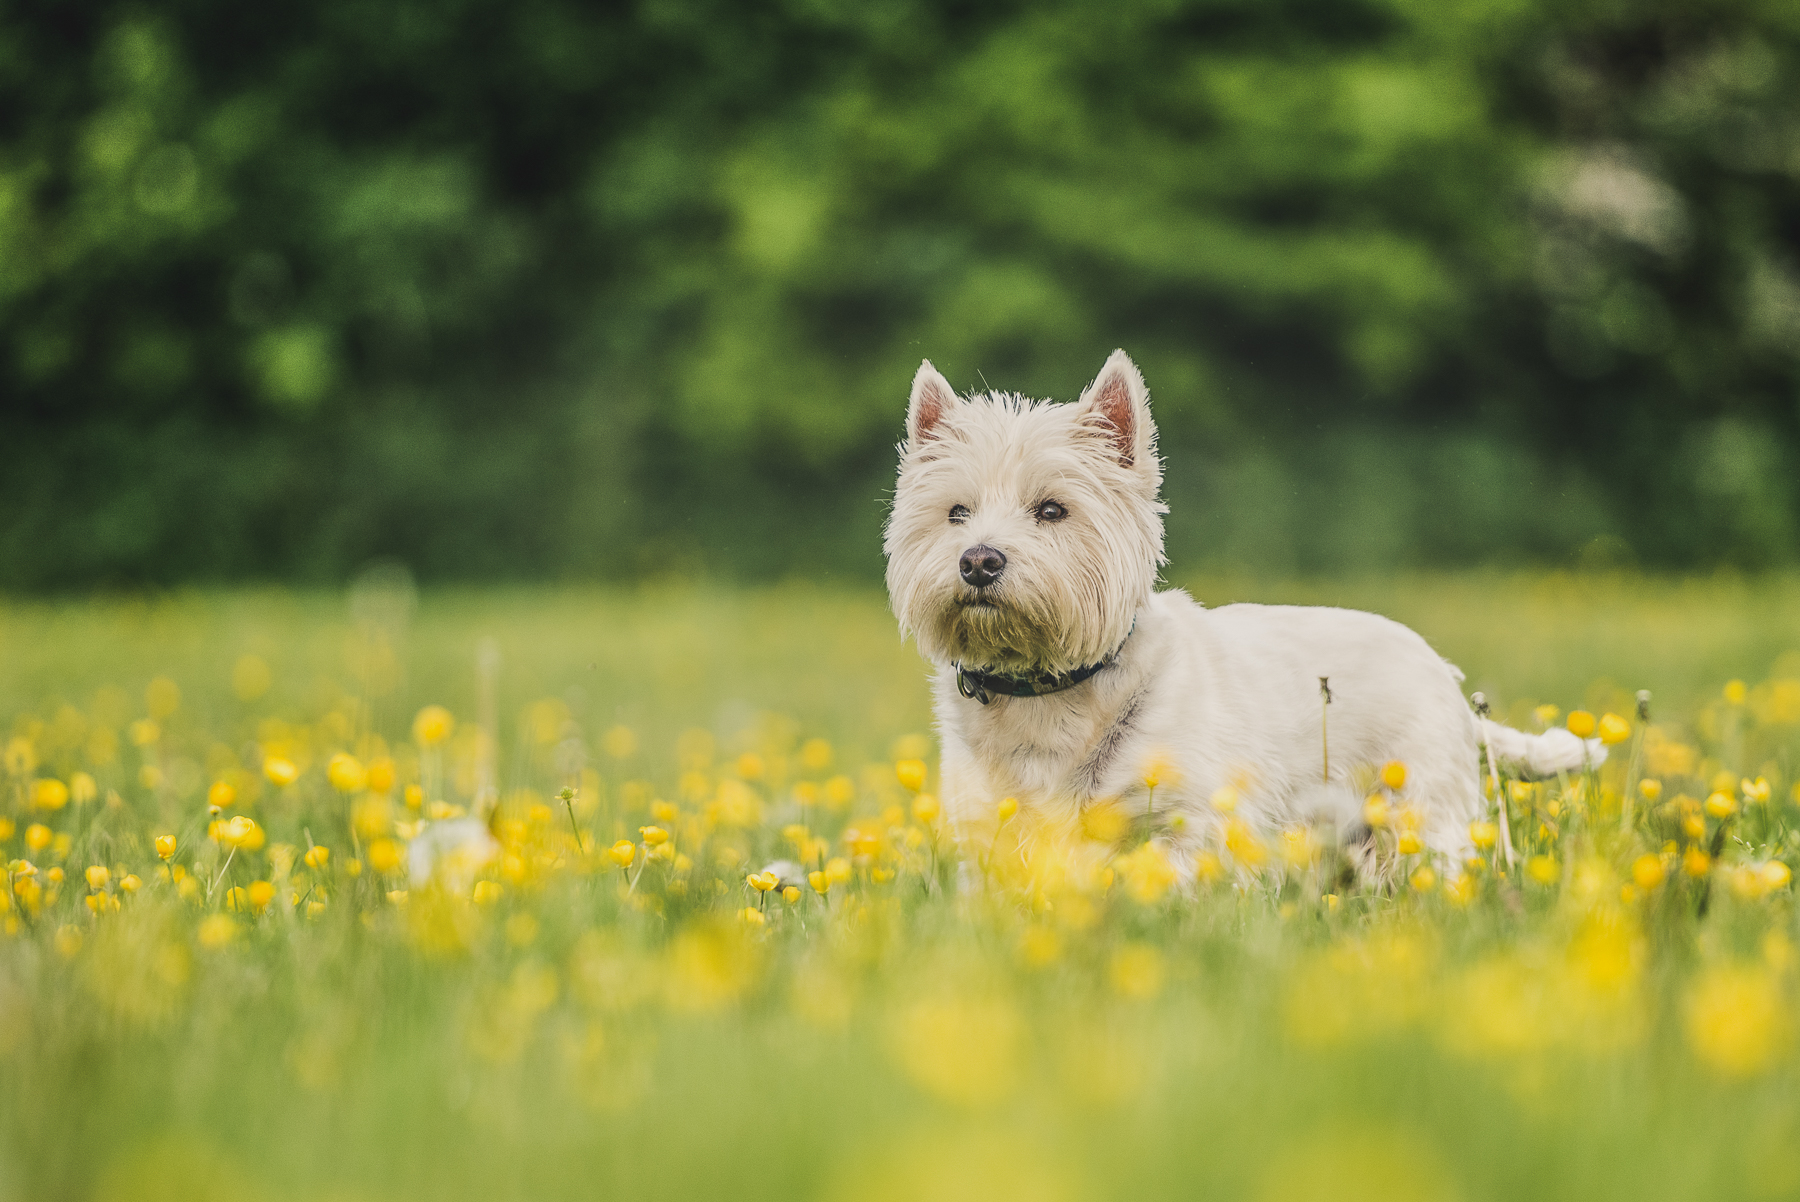 West highland terrier standing in buttercups